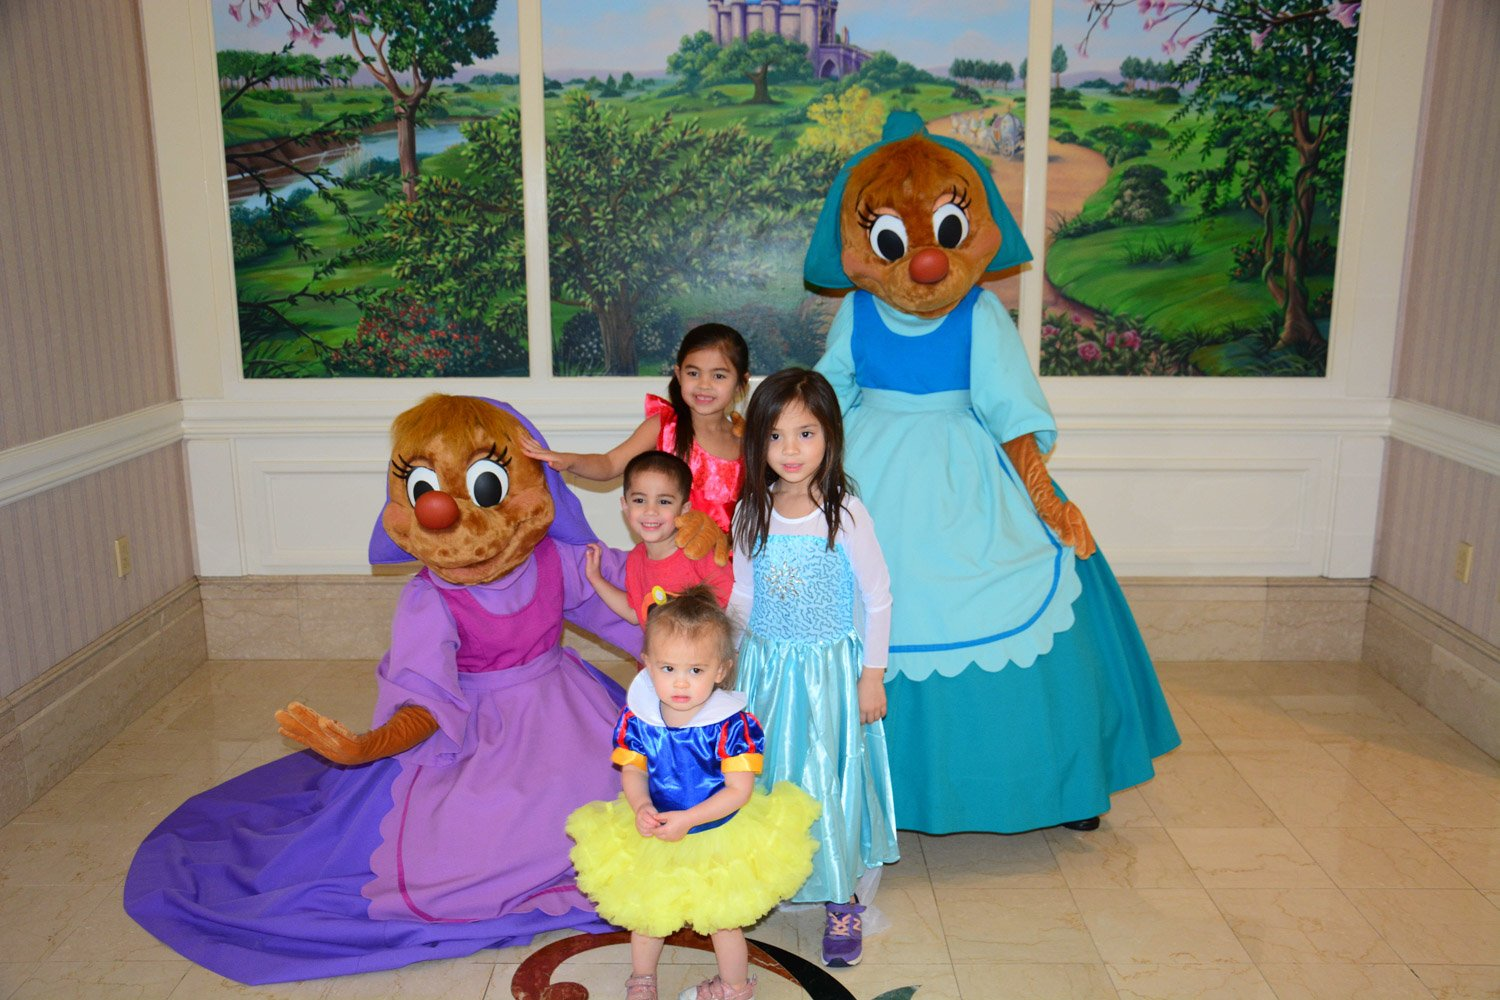 Disney restaurant review at 1900 park fare with suzy and perla Cinderella's mice photo